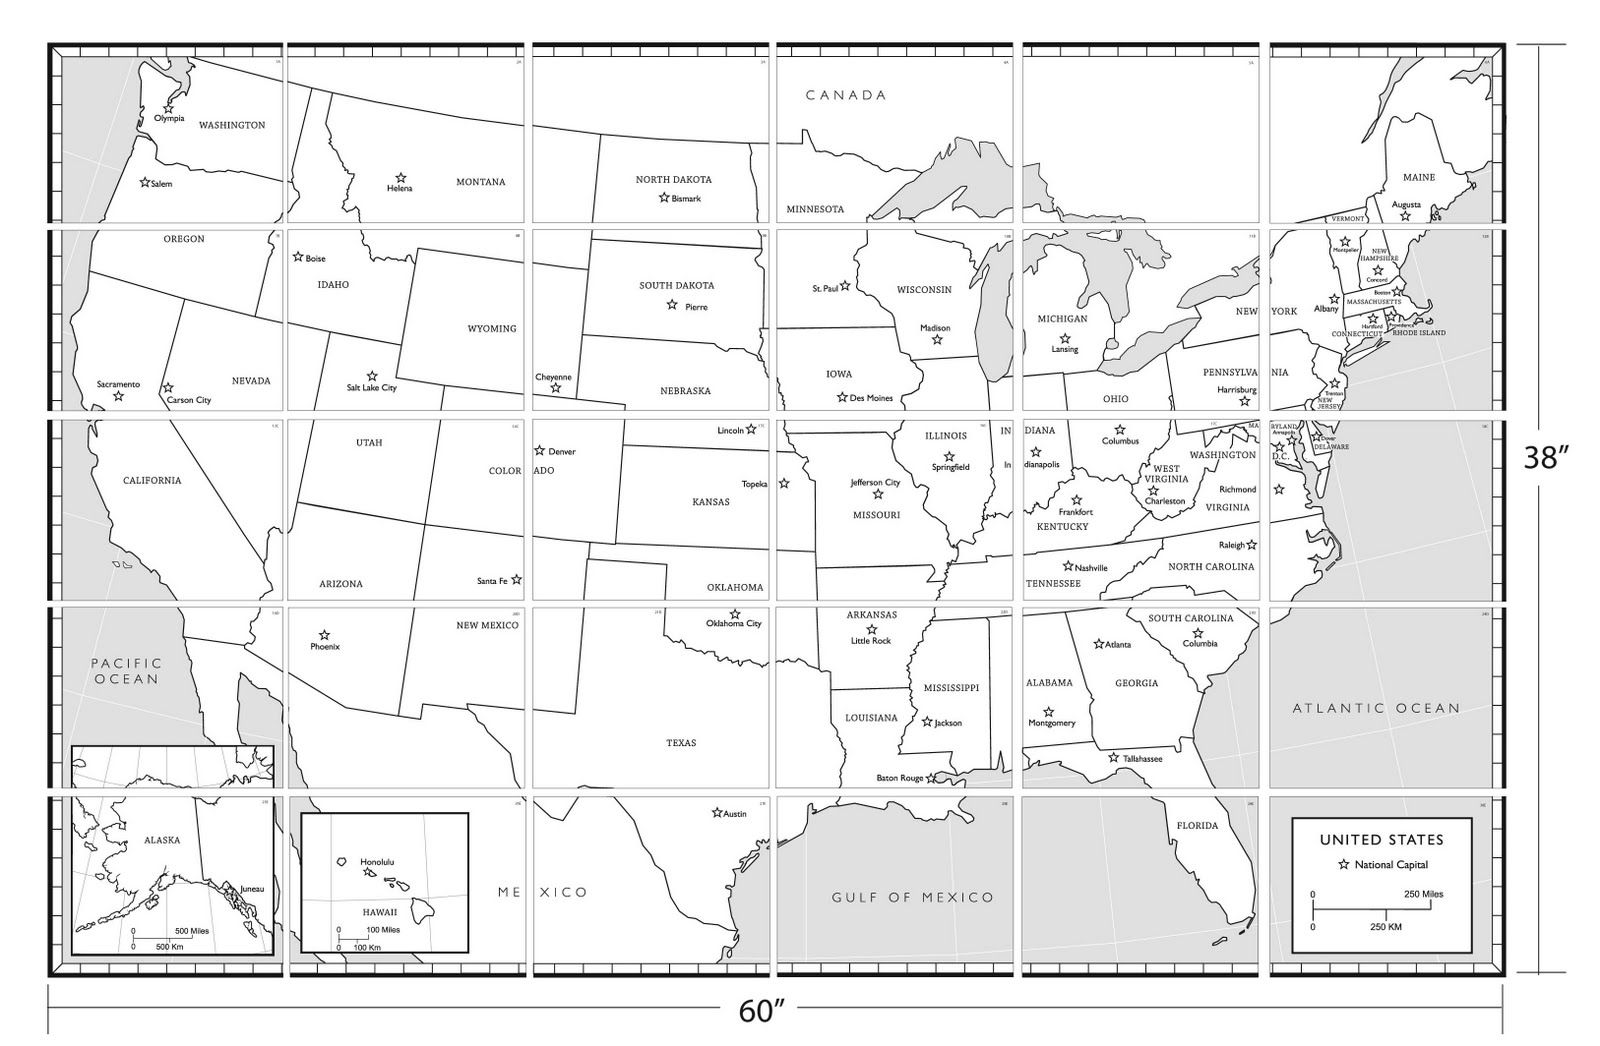 Blank Map Of United States Blank Map Of The United States For - Us map template printable